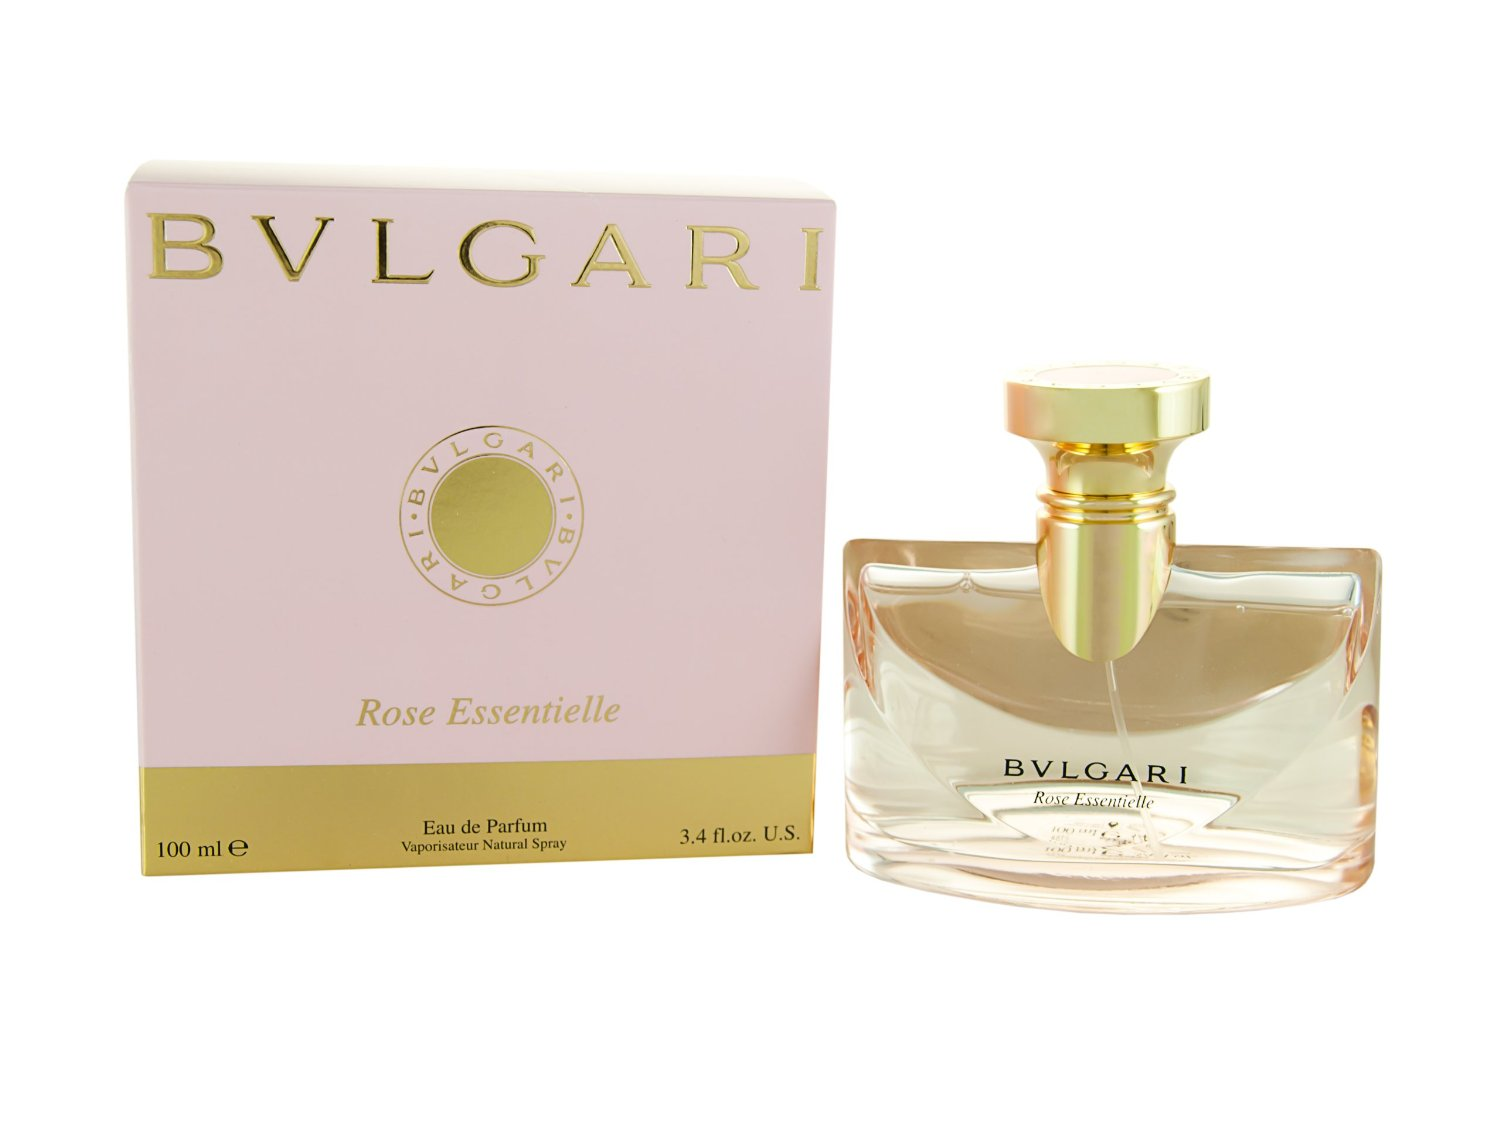 Bvlgari Rose Essentielle Eau de Parfum Spray 3.4oz 100ml